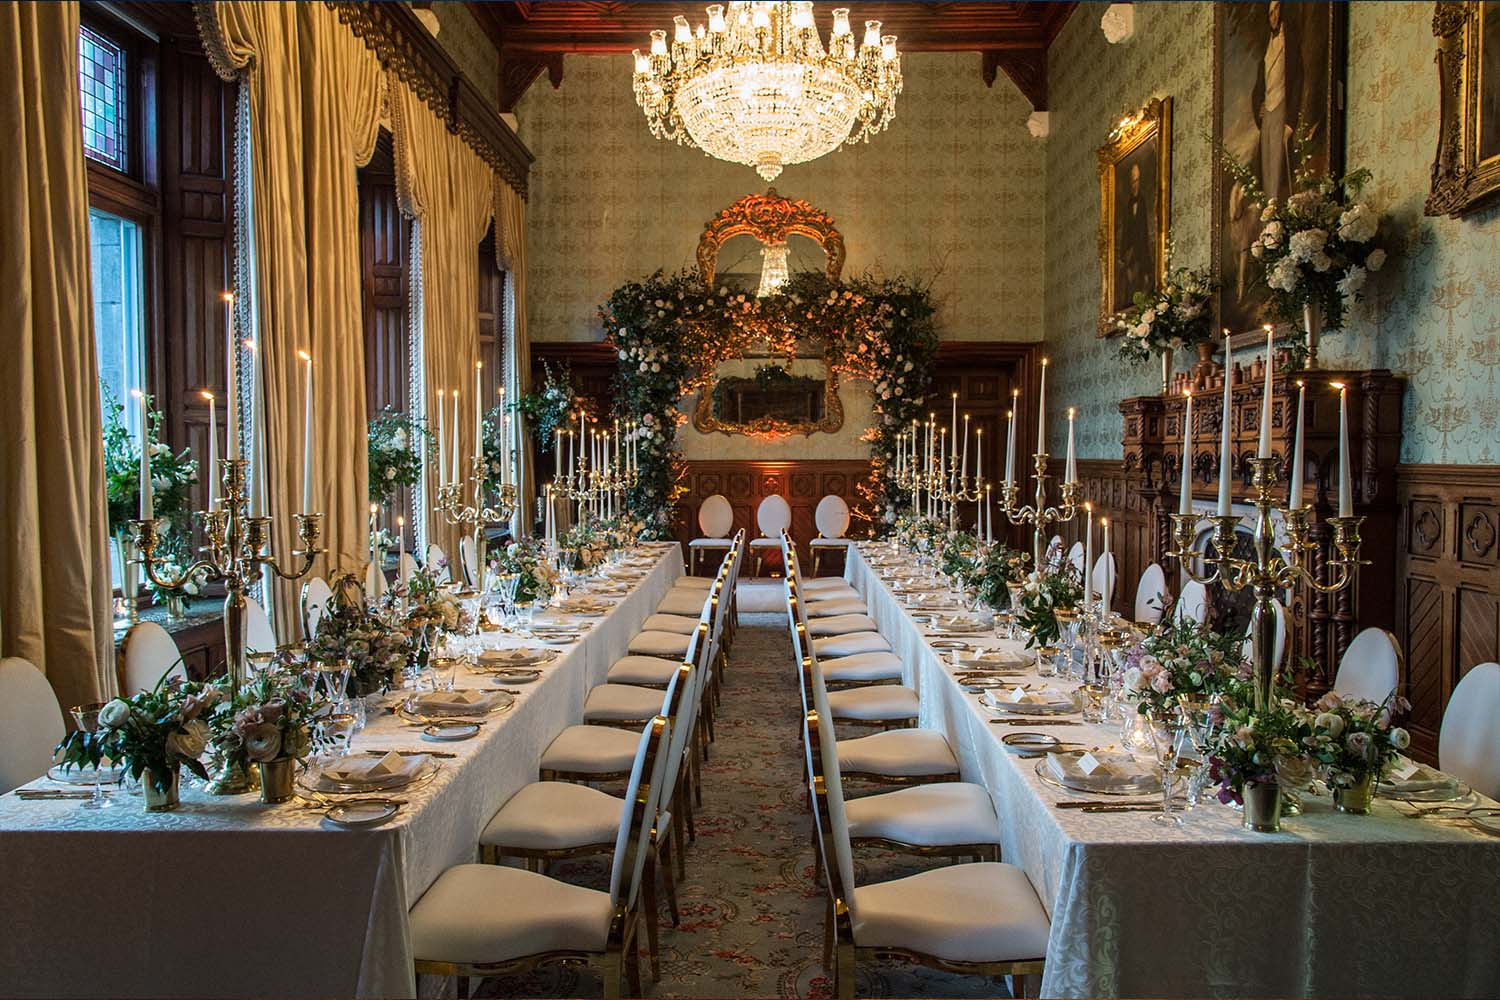 dinner-at-the-connaught-room-ashford-castle-ireland1.jpg